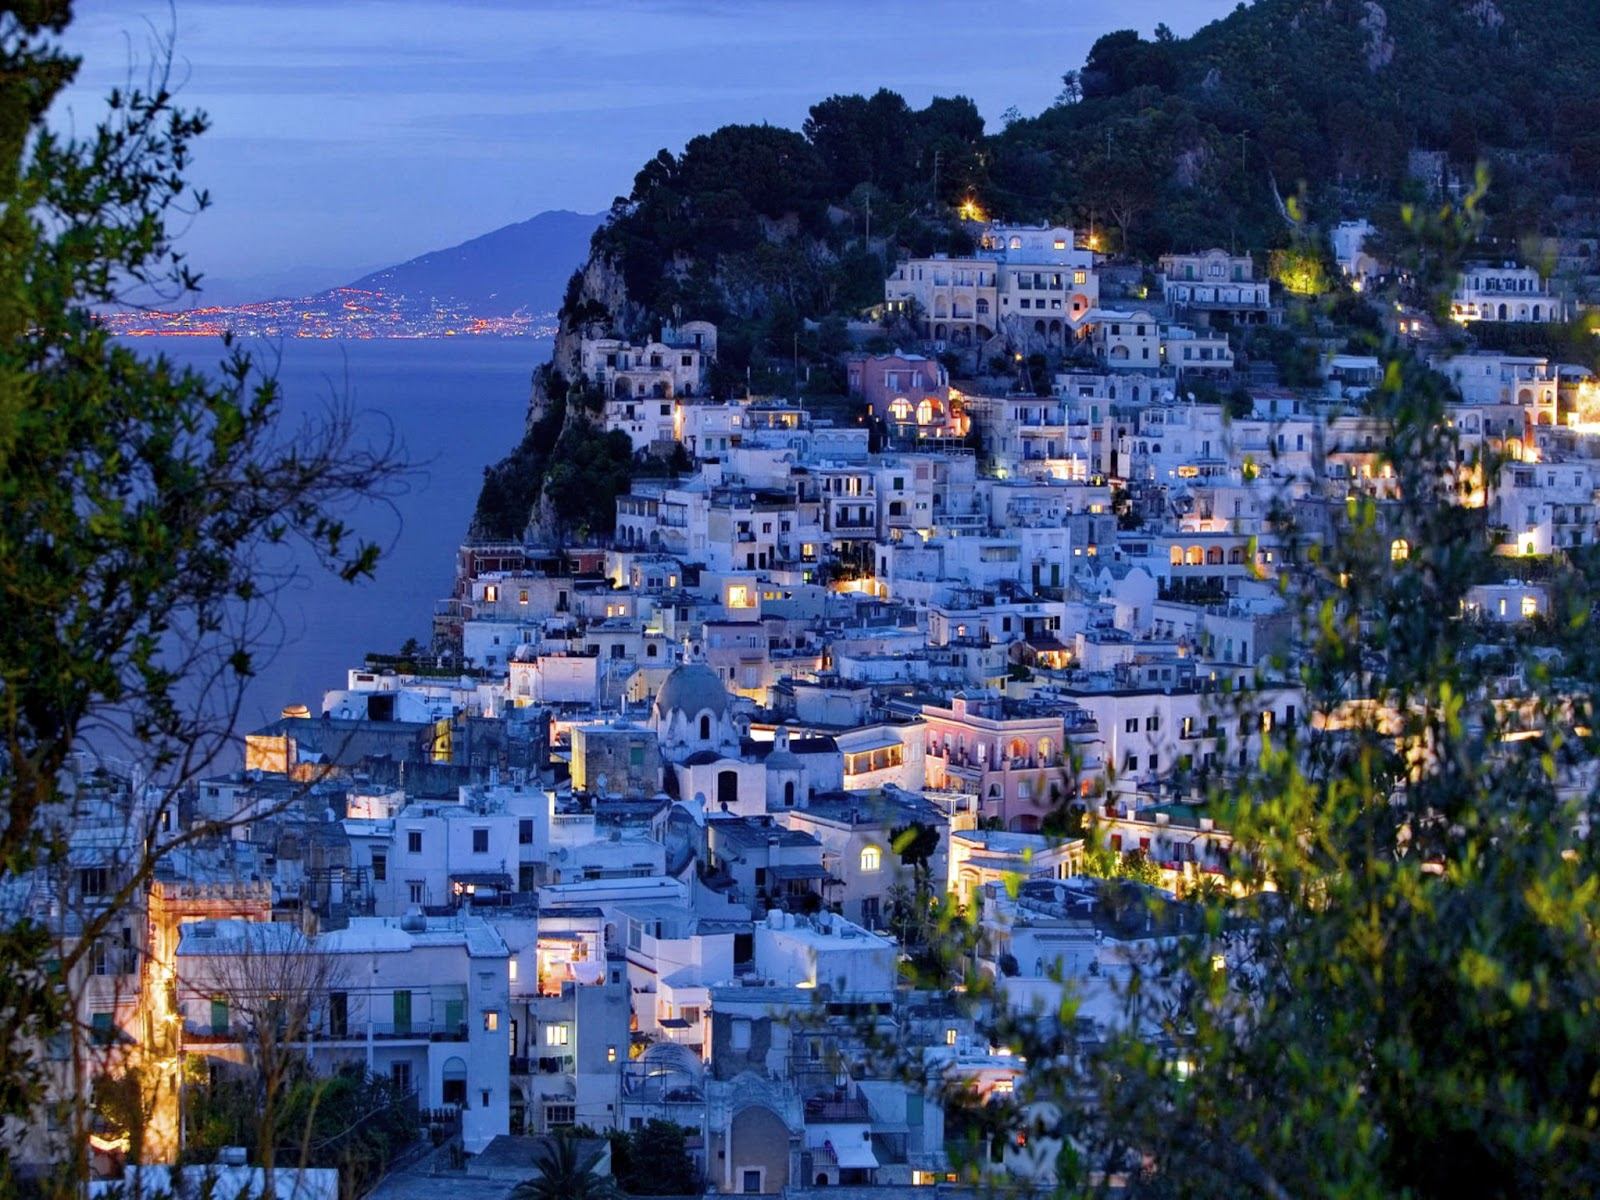 Travel adventures capri a voyage to capri naples - Naples italy wallpaper ...